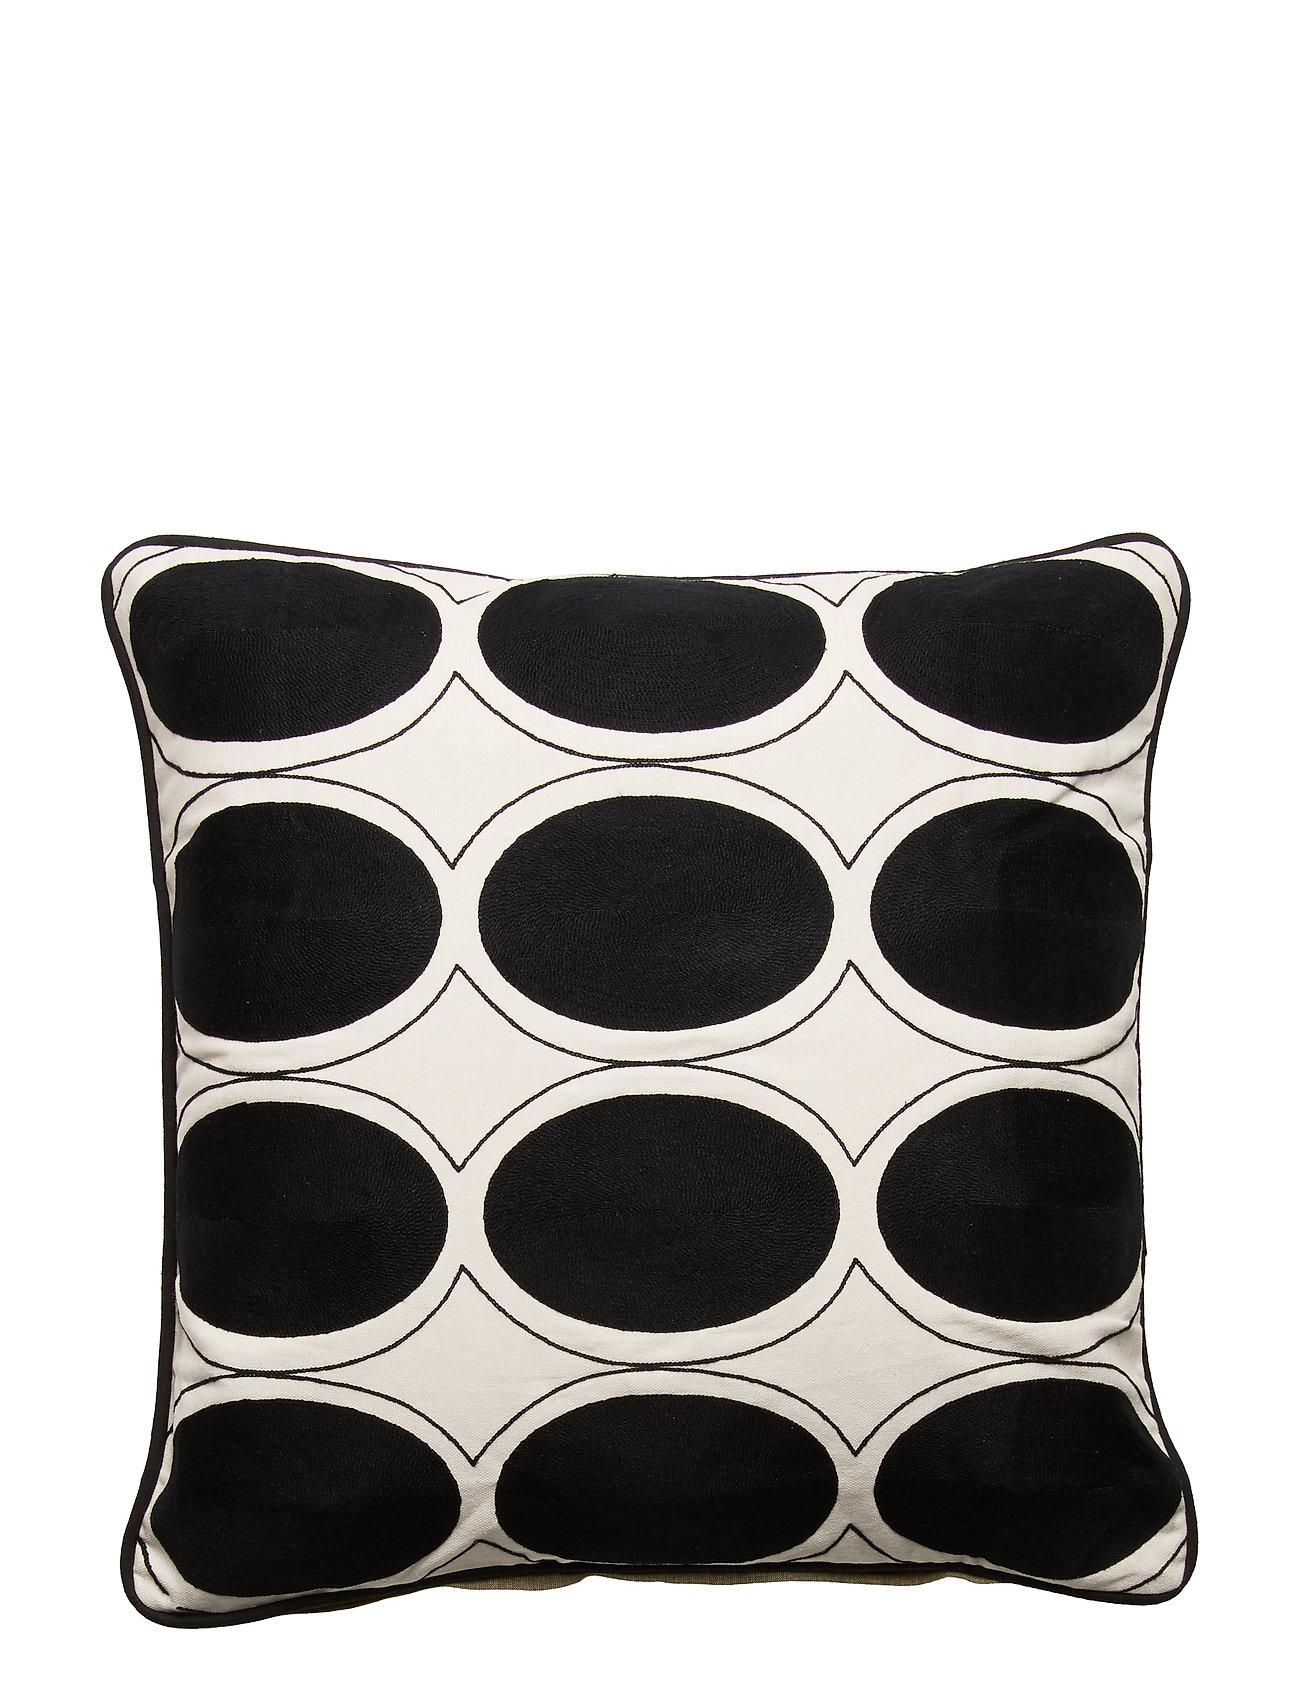 DAY Home Day Ovale Cushion Cover - BLACK/WHITE